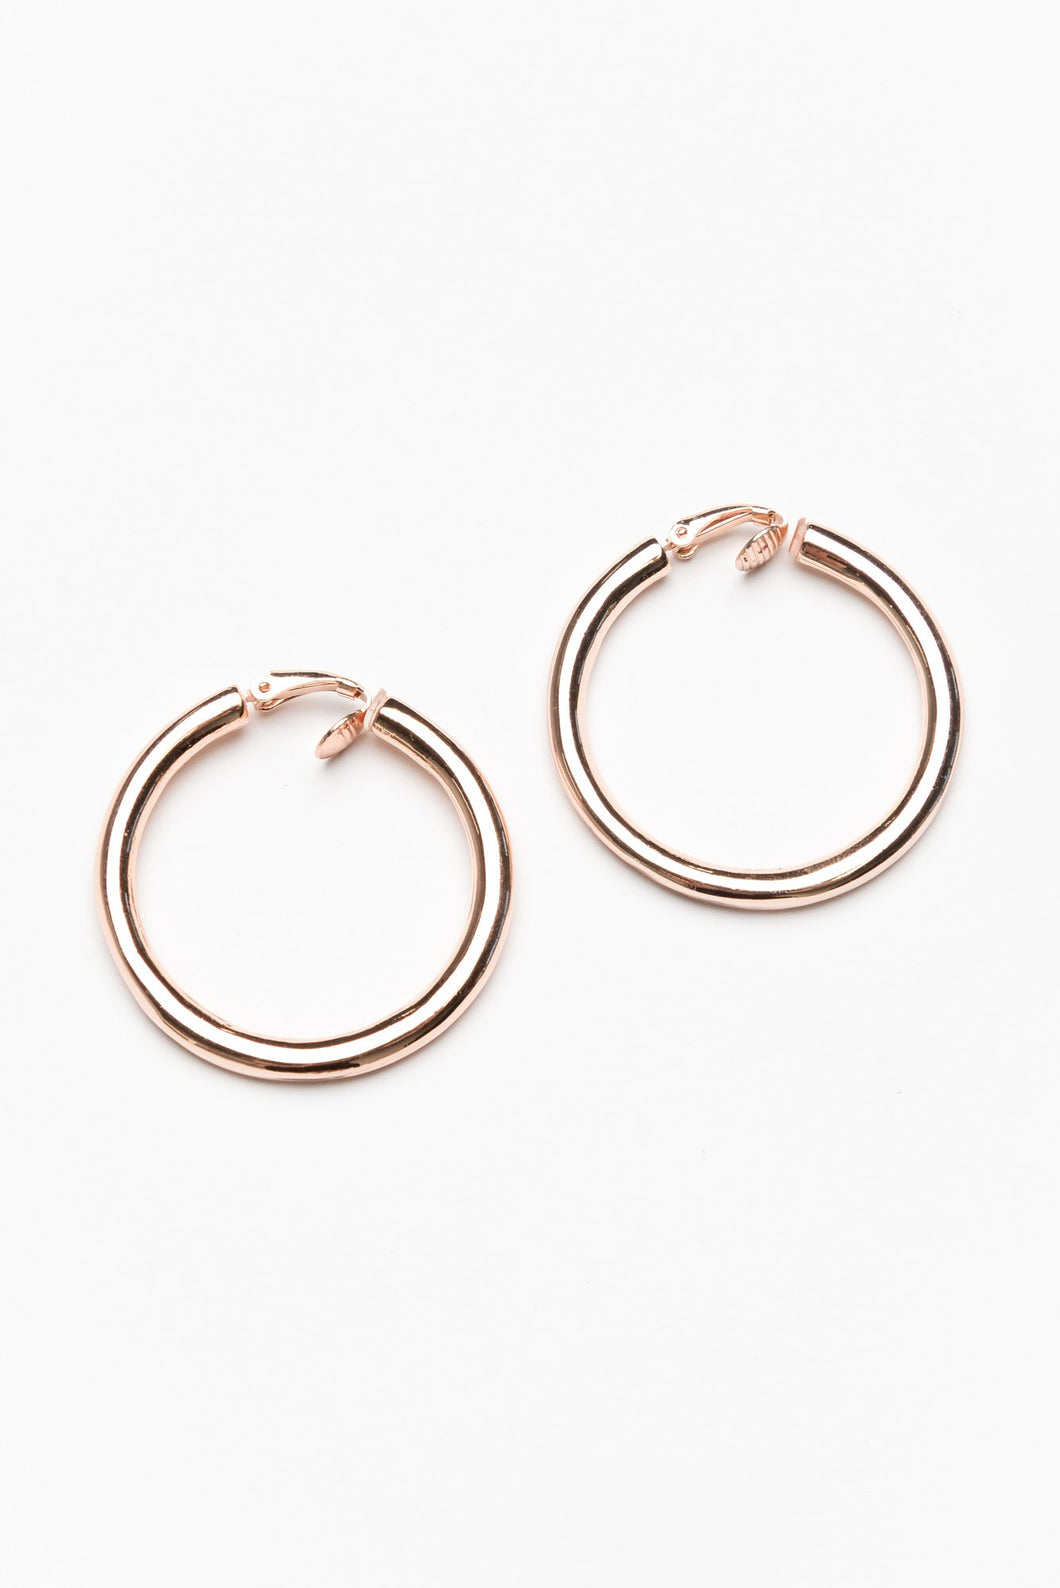 Amalfi Rose Gold Tube Hoop Earring